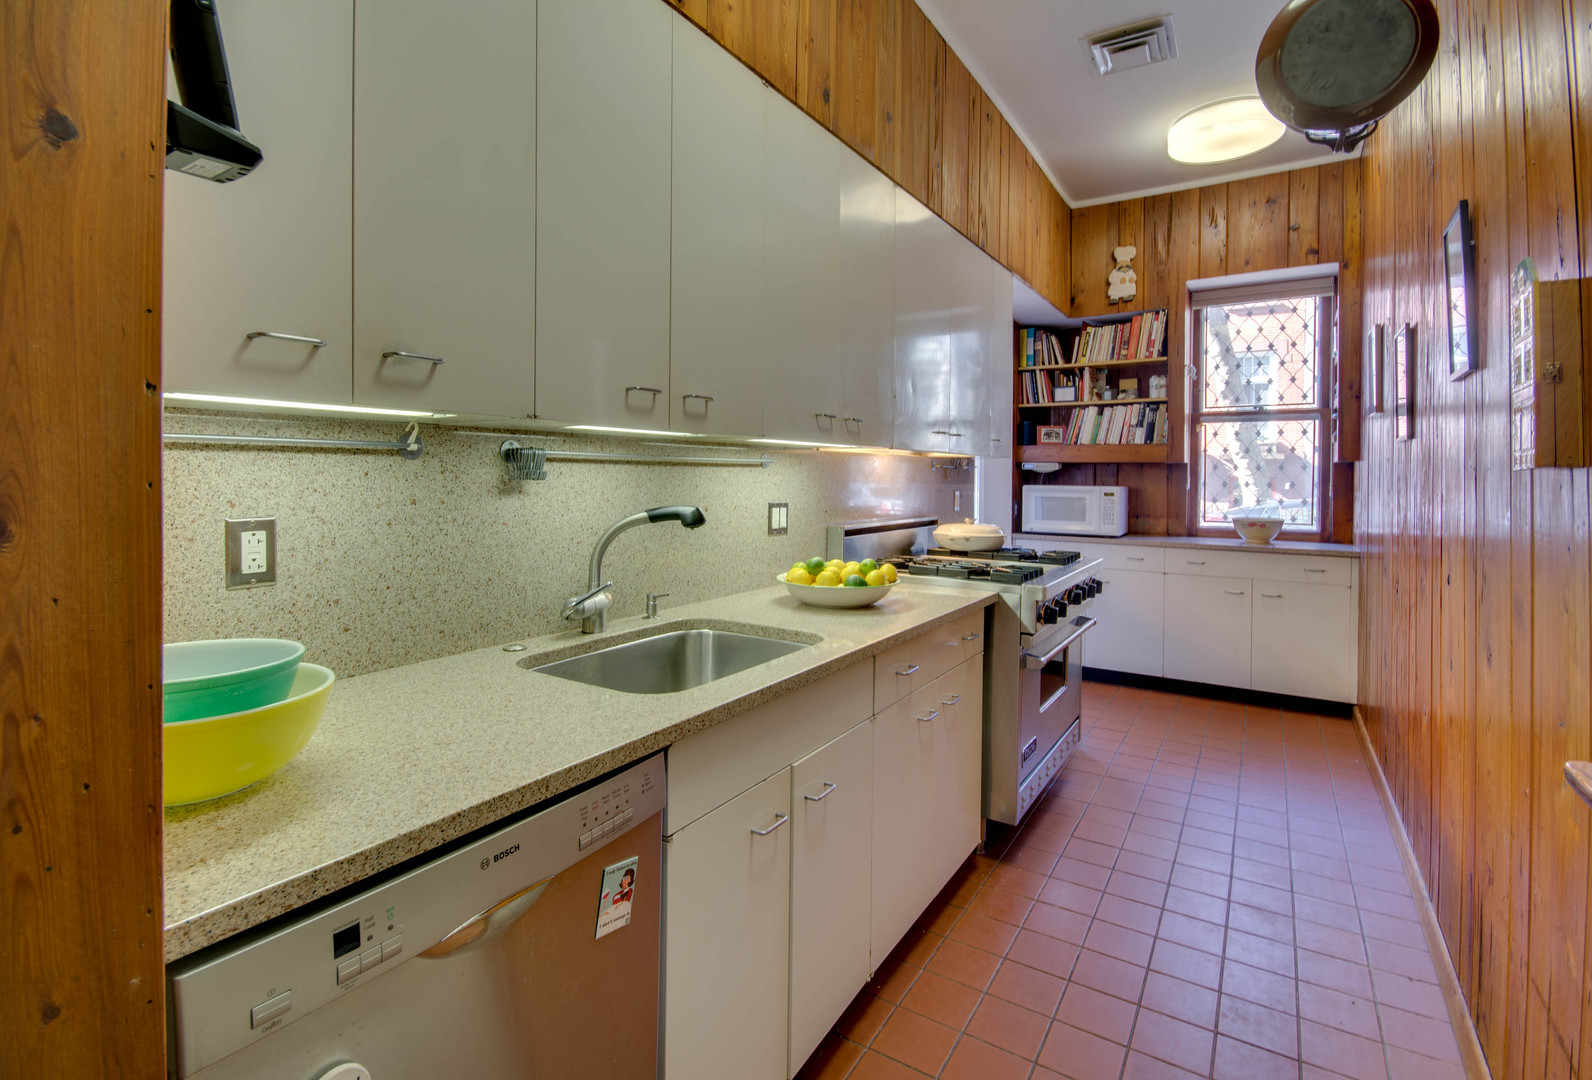 15-Kitchen.jpg